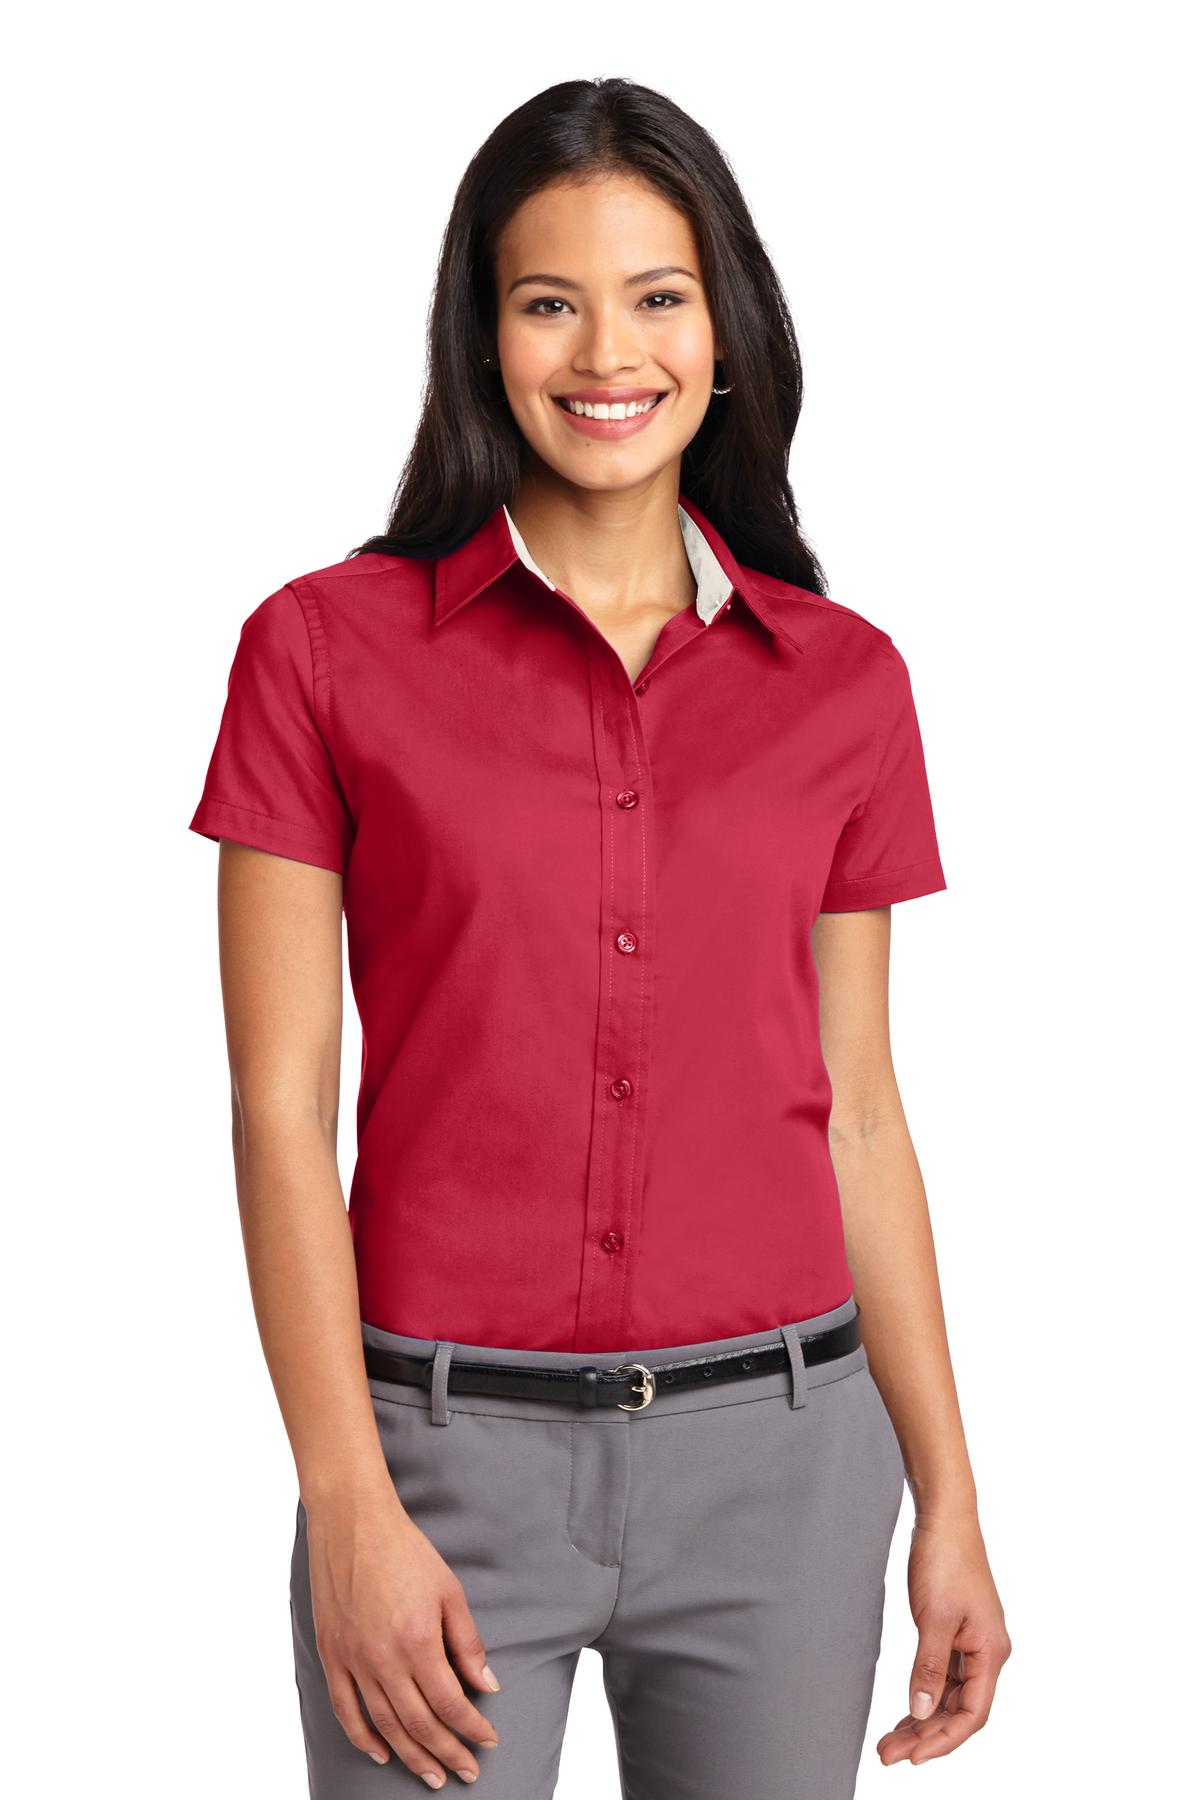 Port Authority ®  Ladies Short Sleeve Easy Care  Shirt.  L508 - Red/ Light Stone